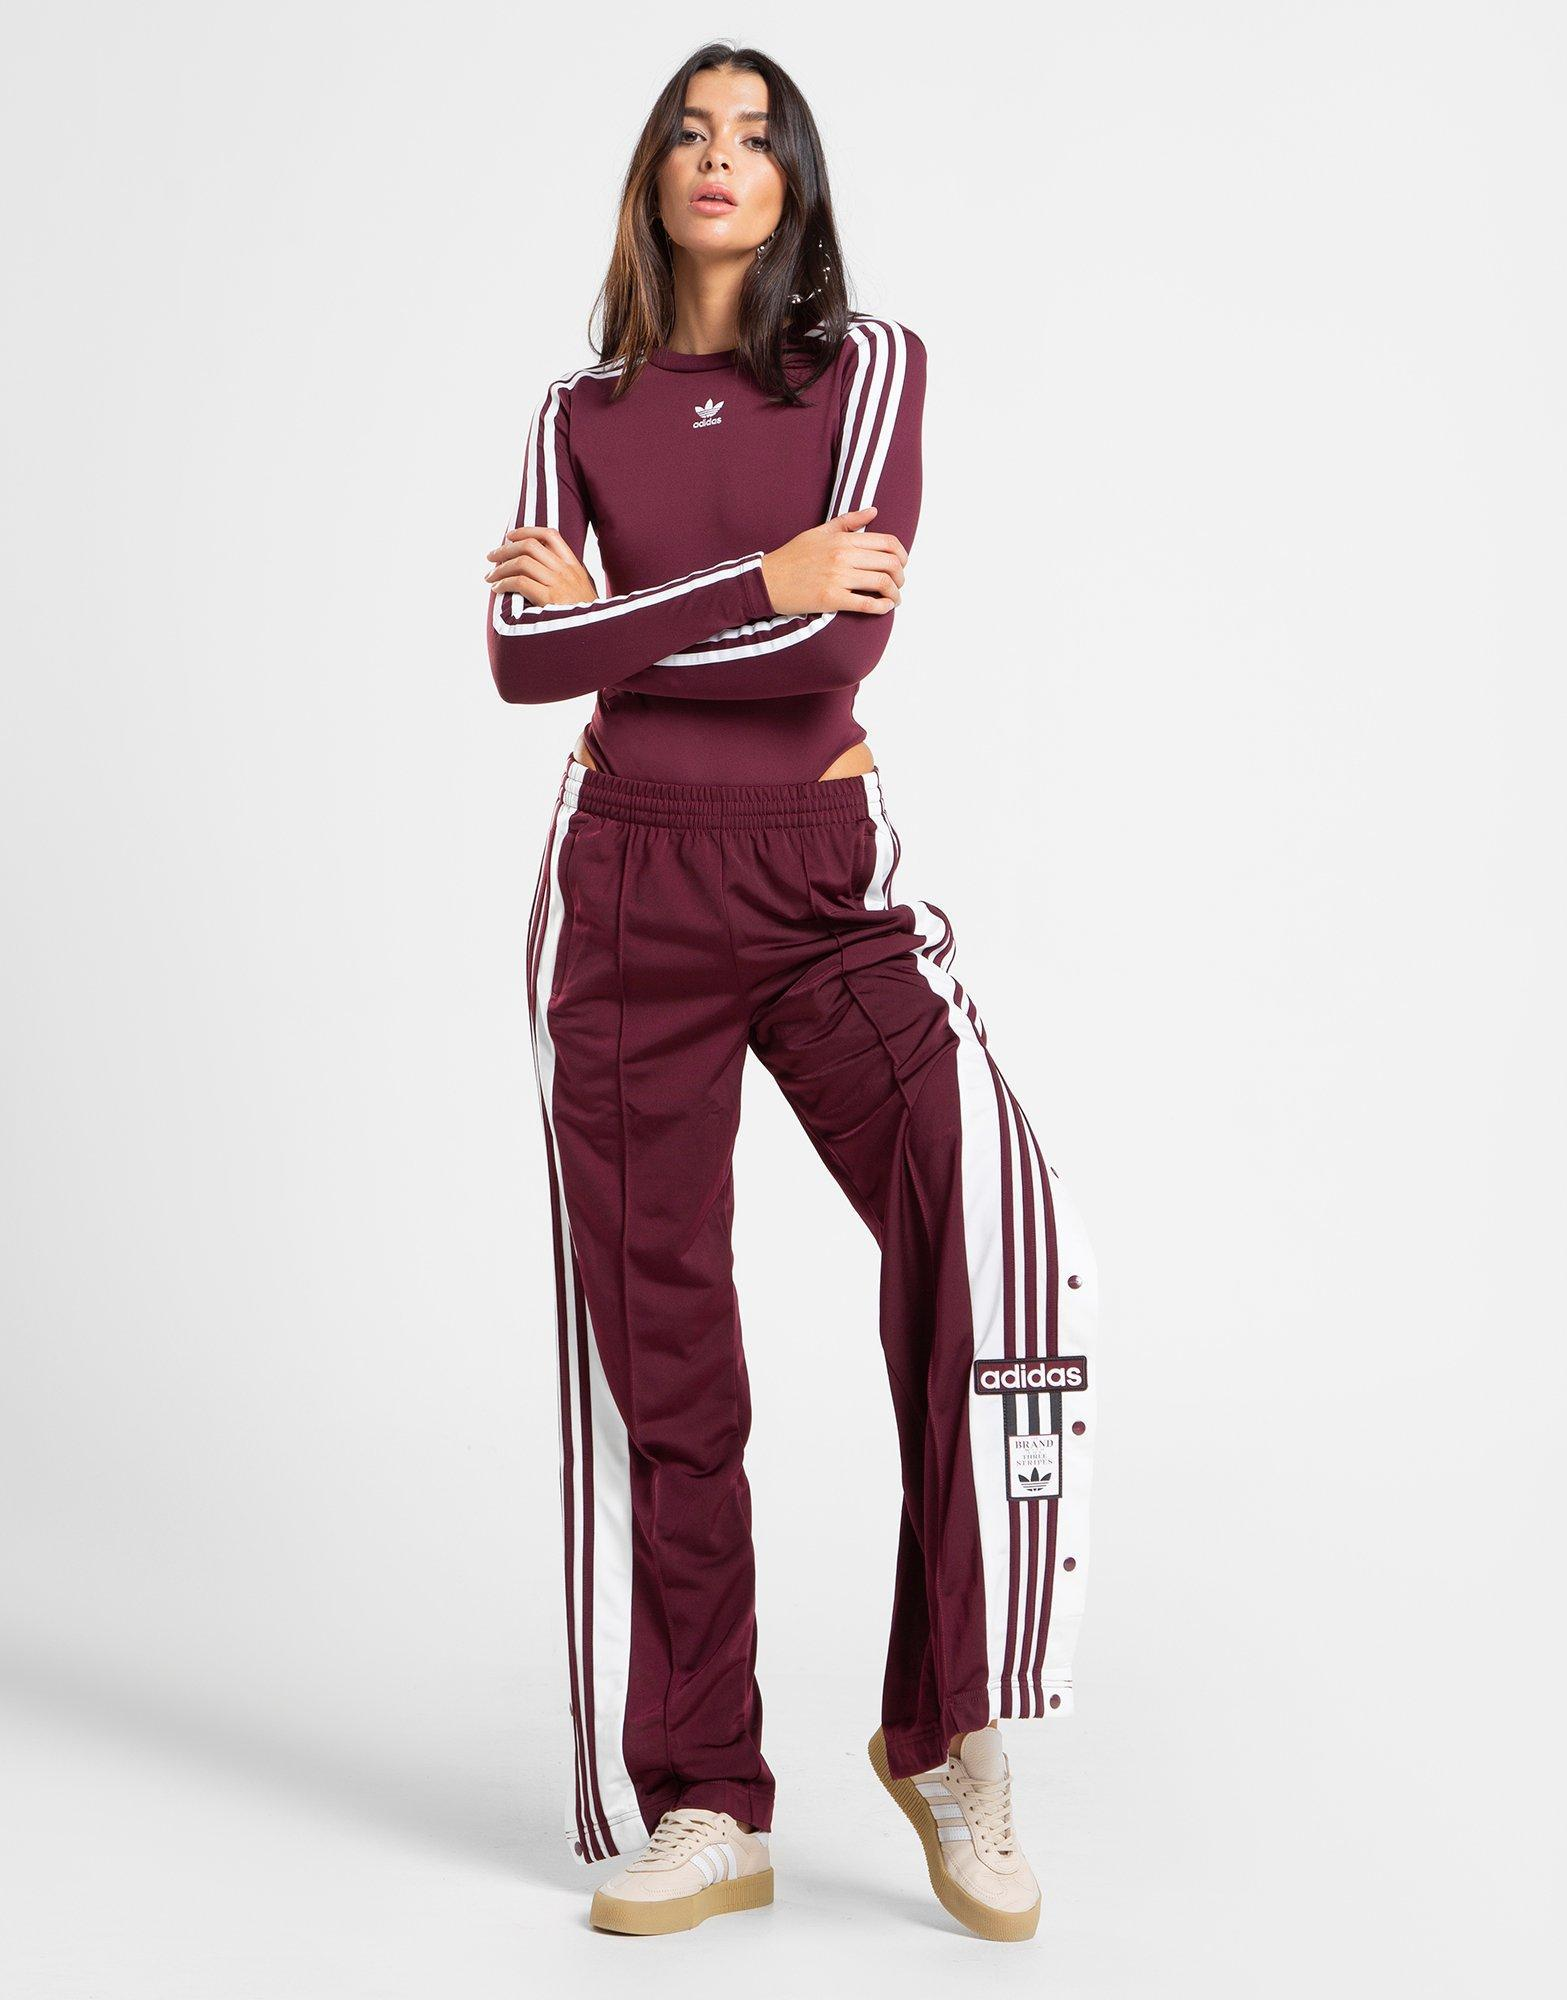 fd77e9002aaac Lyst - adidas Originals 3-stripes Long Sleeve Bodysuit in Red